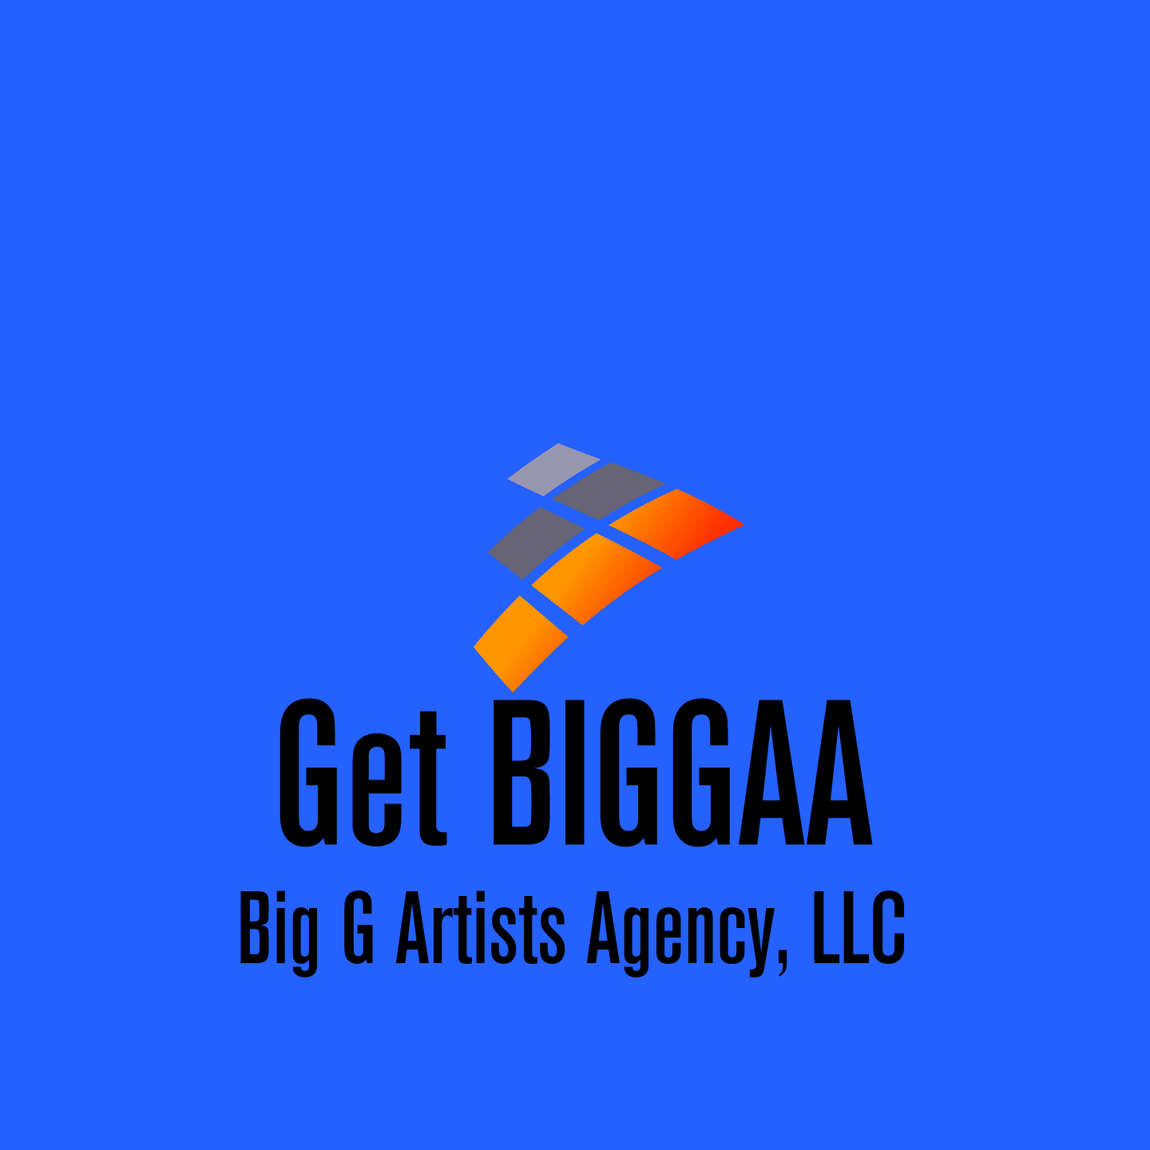 Get BIGGAA - Get BIGGAA TV